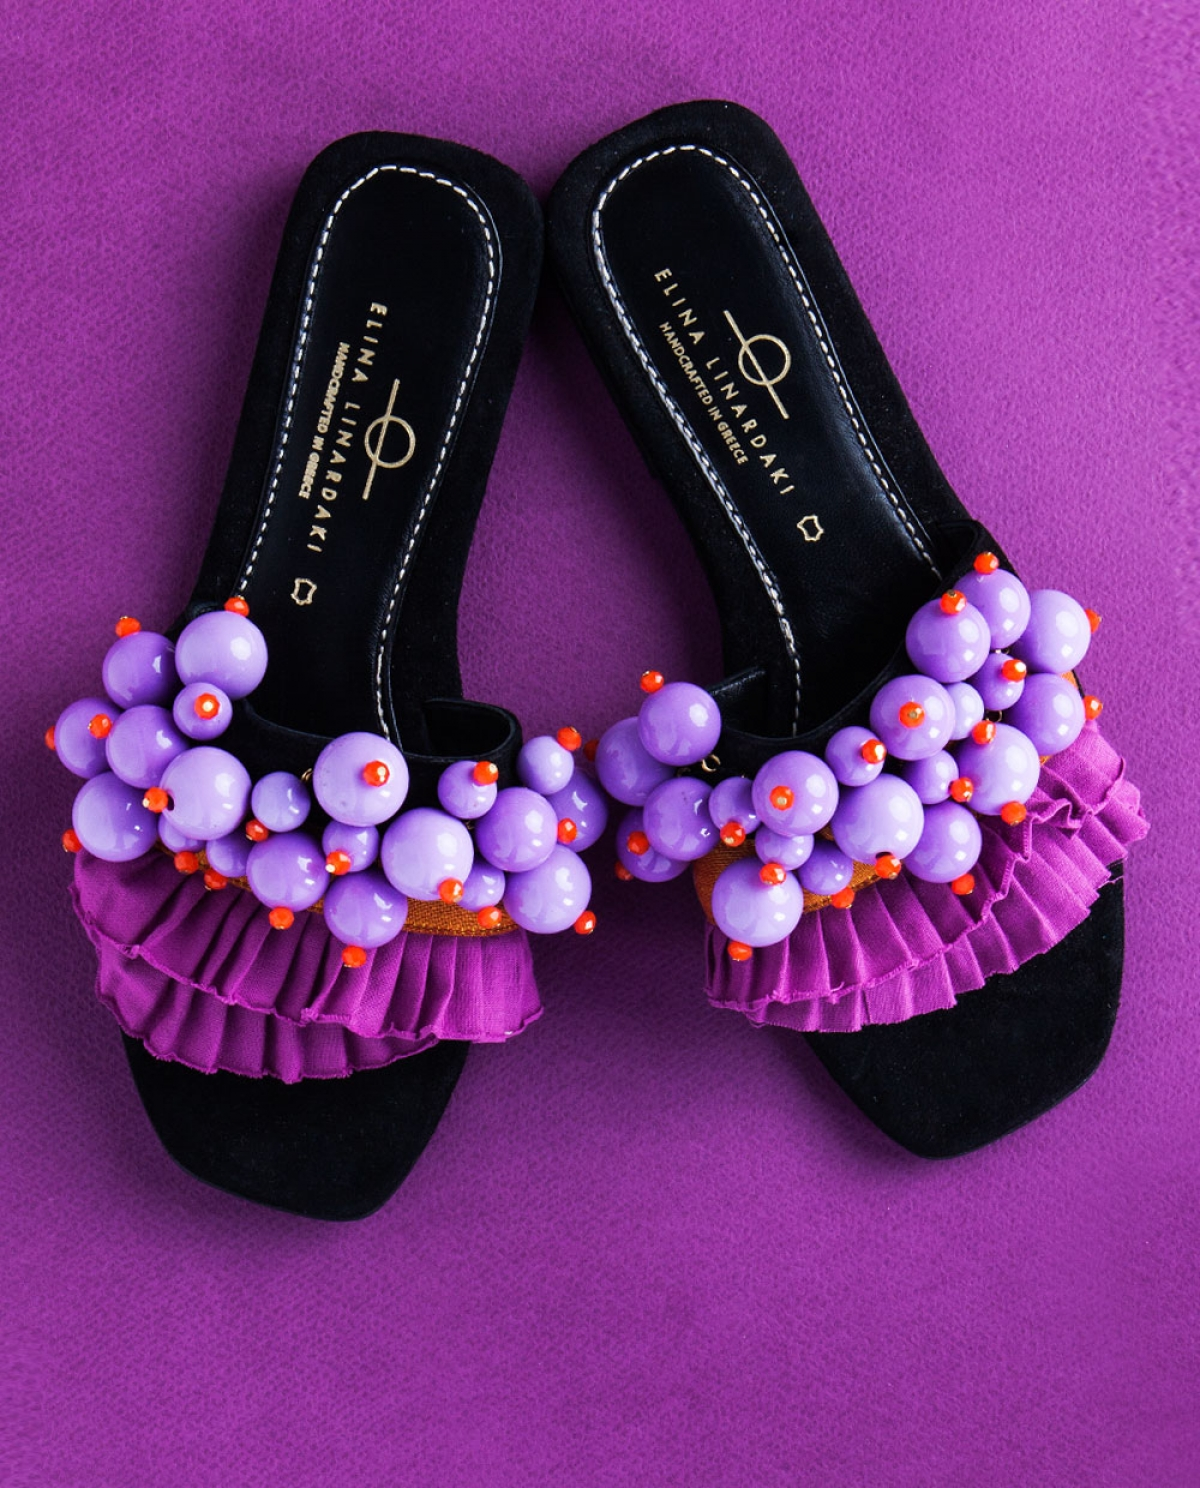 Berry Beads-embellished Sandals